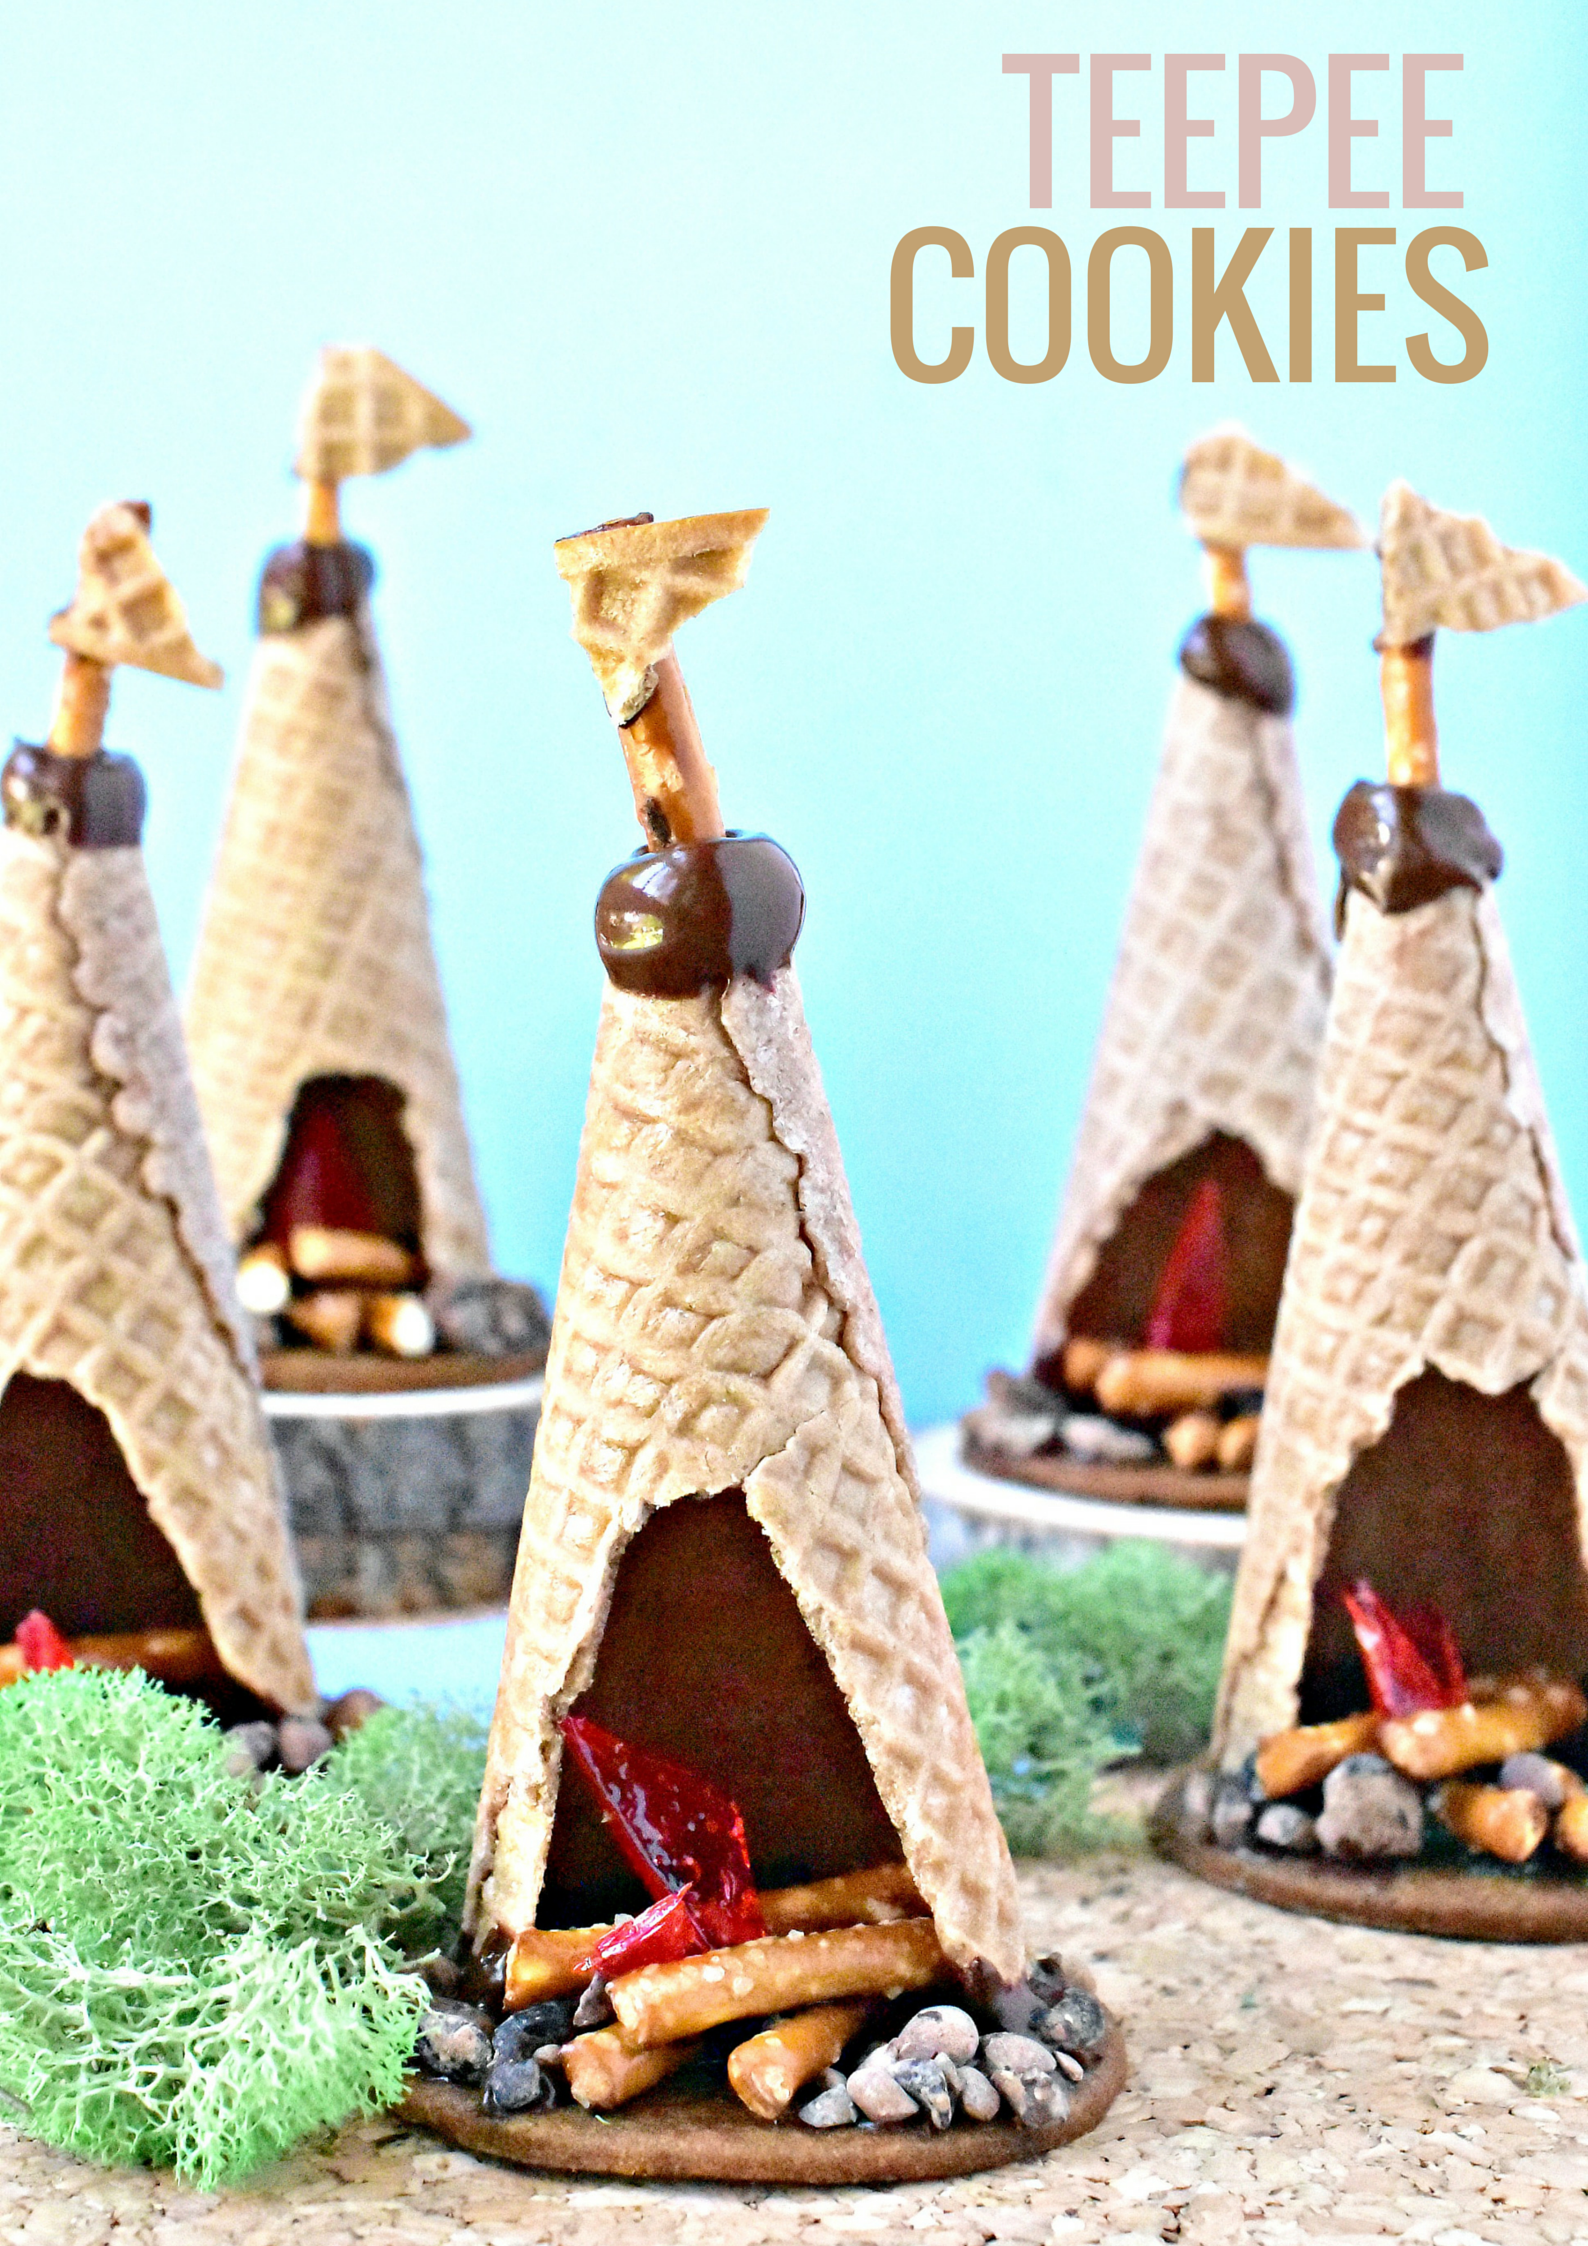 No Need To Pack Your Sleeping Bag You Can Still Feel Like Are Camping With These Allergen Friendly Tee Cookies